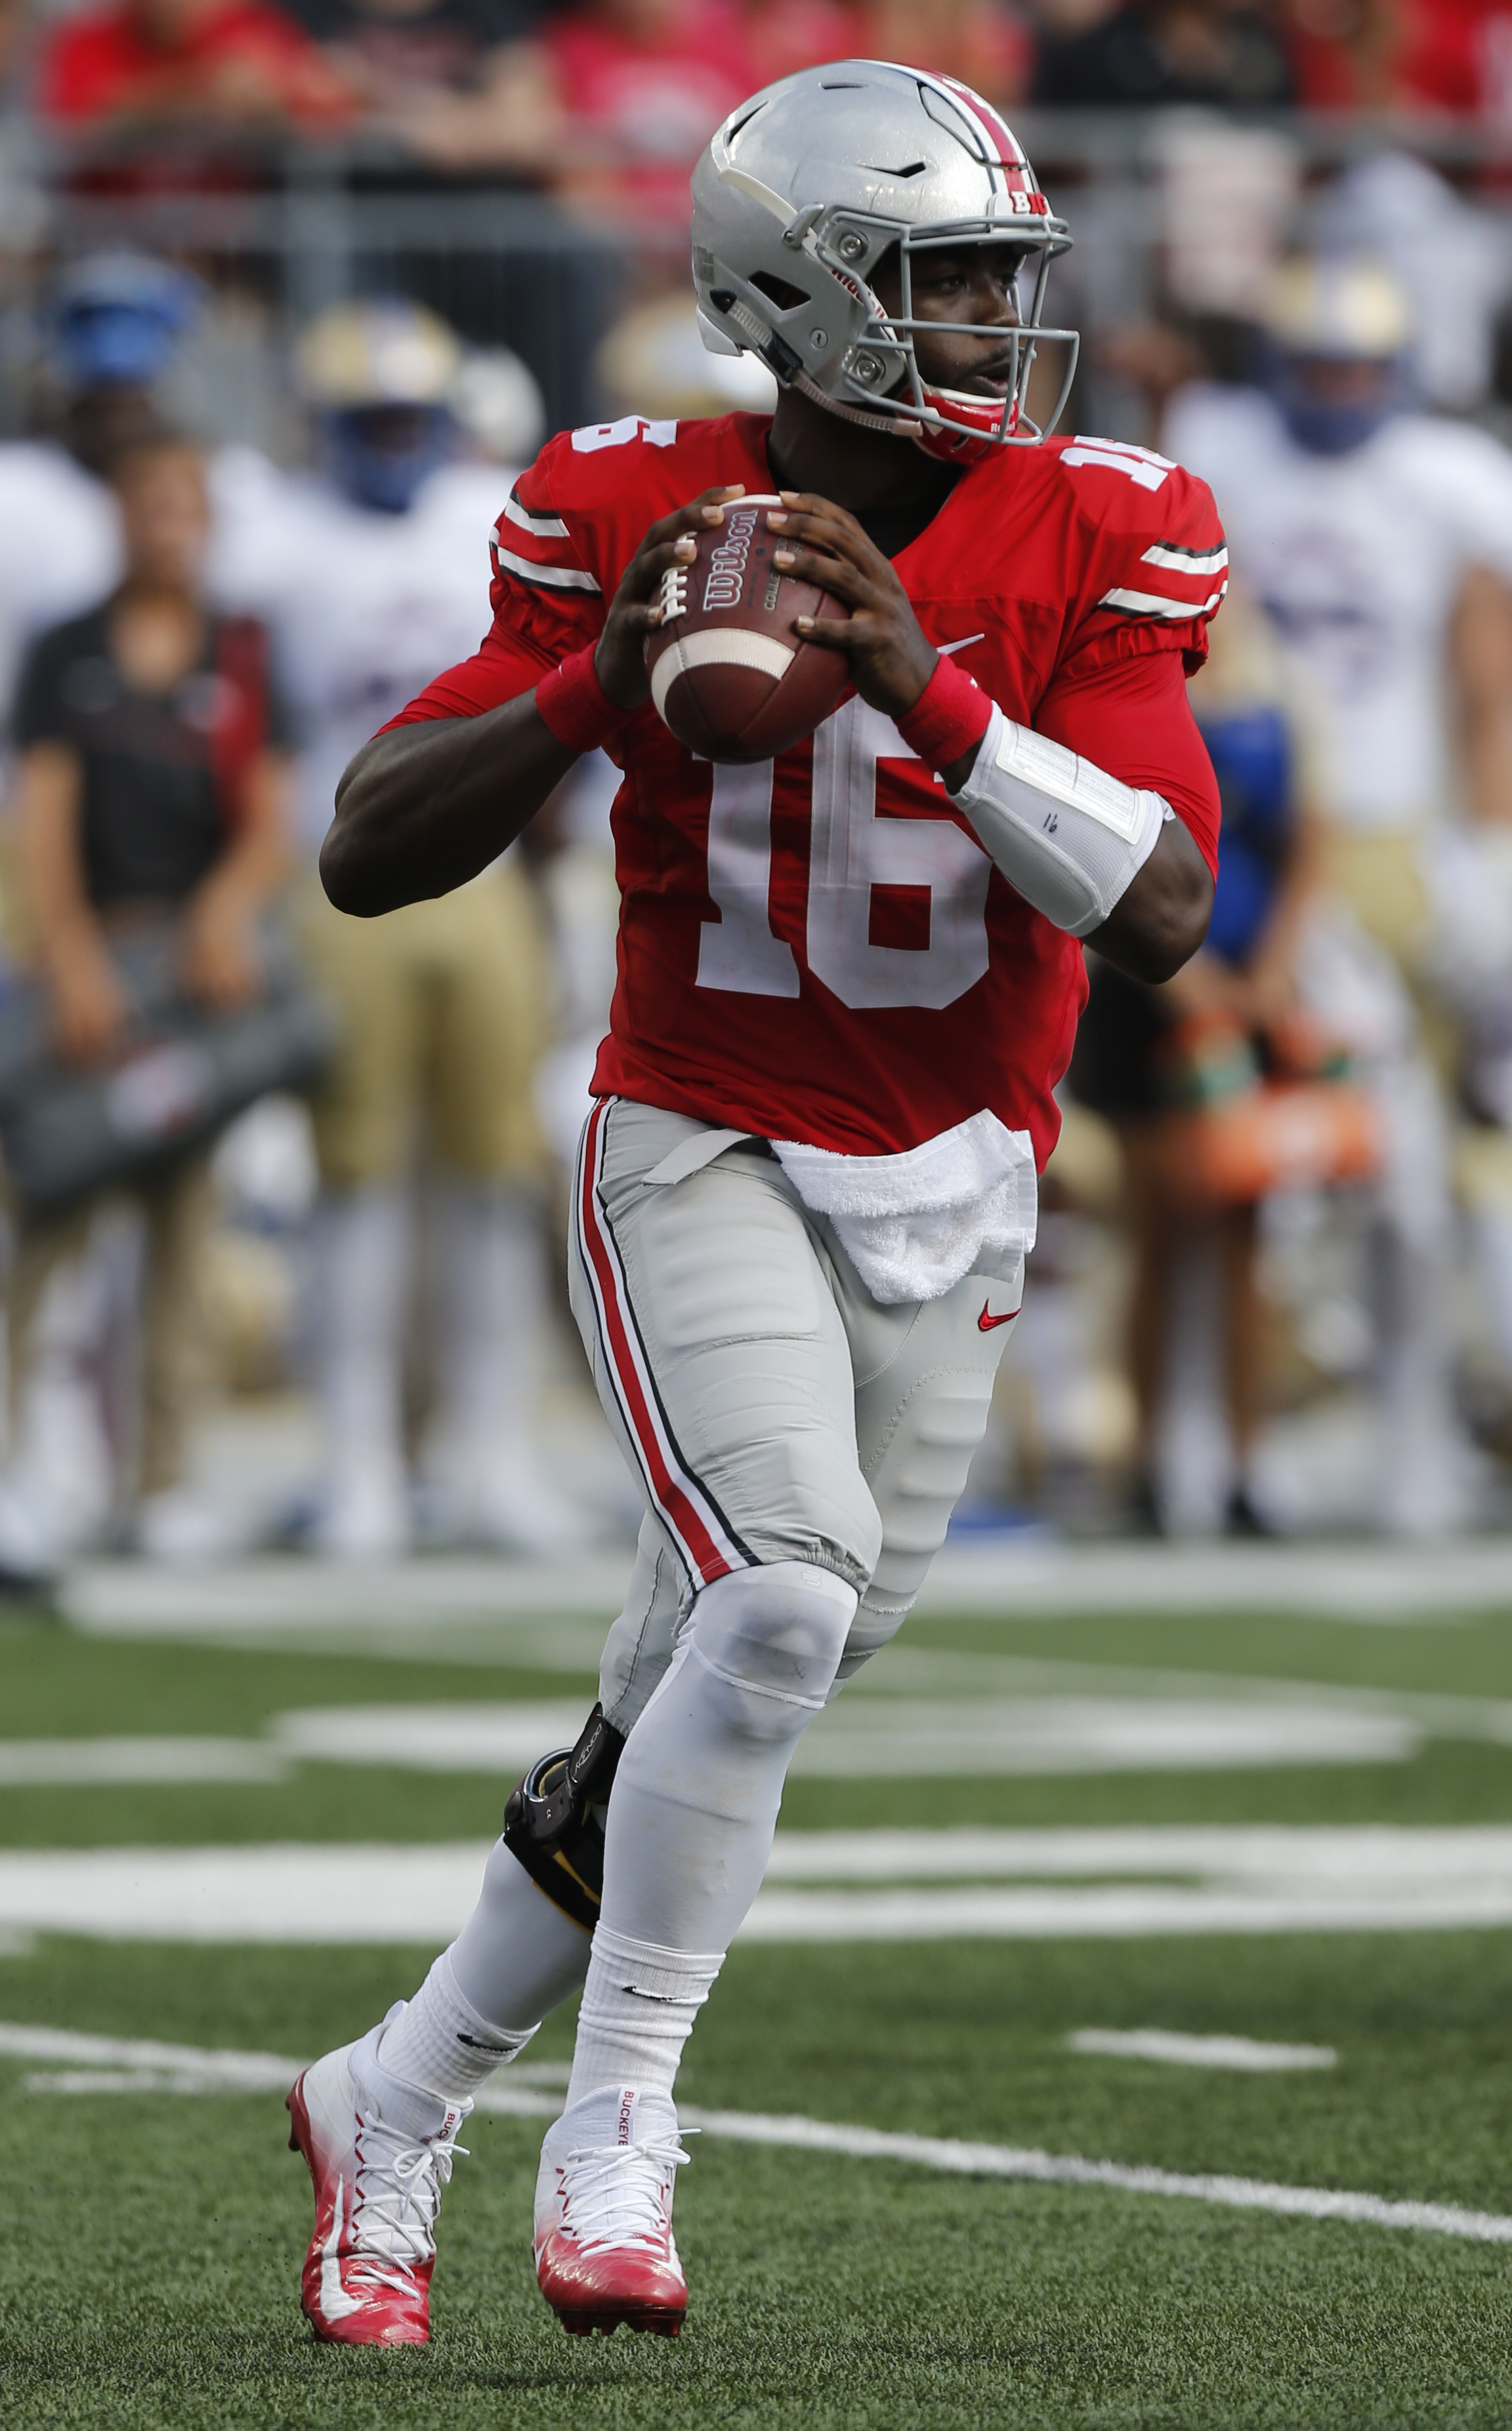 FILE - In this Sept 10, 2016, file photo, Ohio State quarterback J.T. Barrett looks for a receiver during an NCAA college football game against Tulsa in Columbus, Ohio.  Barrett has accounted for nine touchdowns so far for the third-ranked Buckeyes, who p